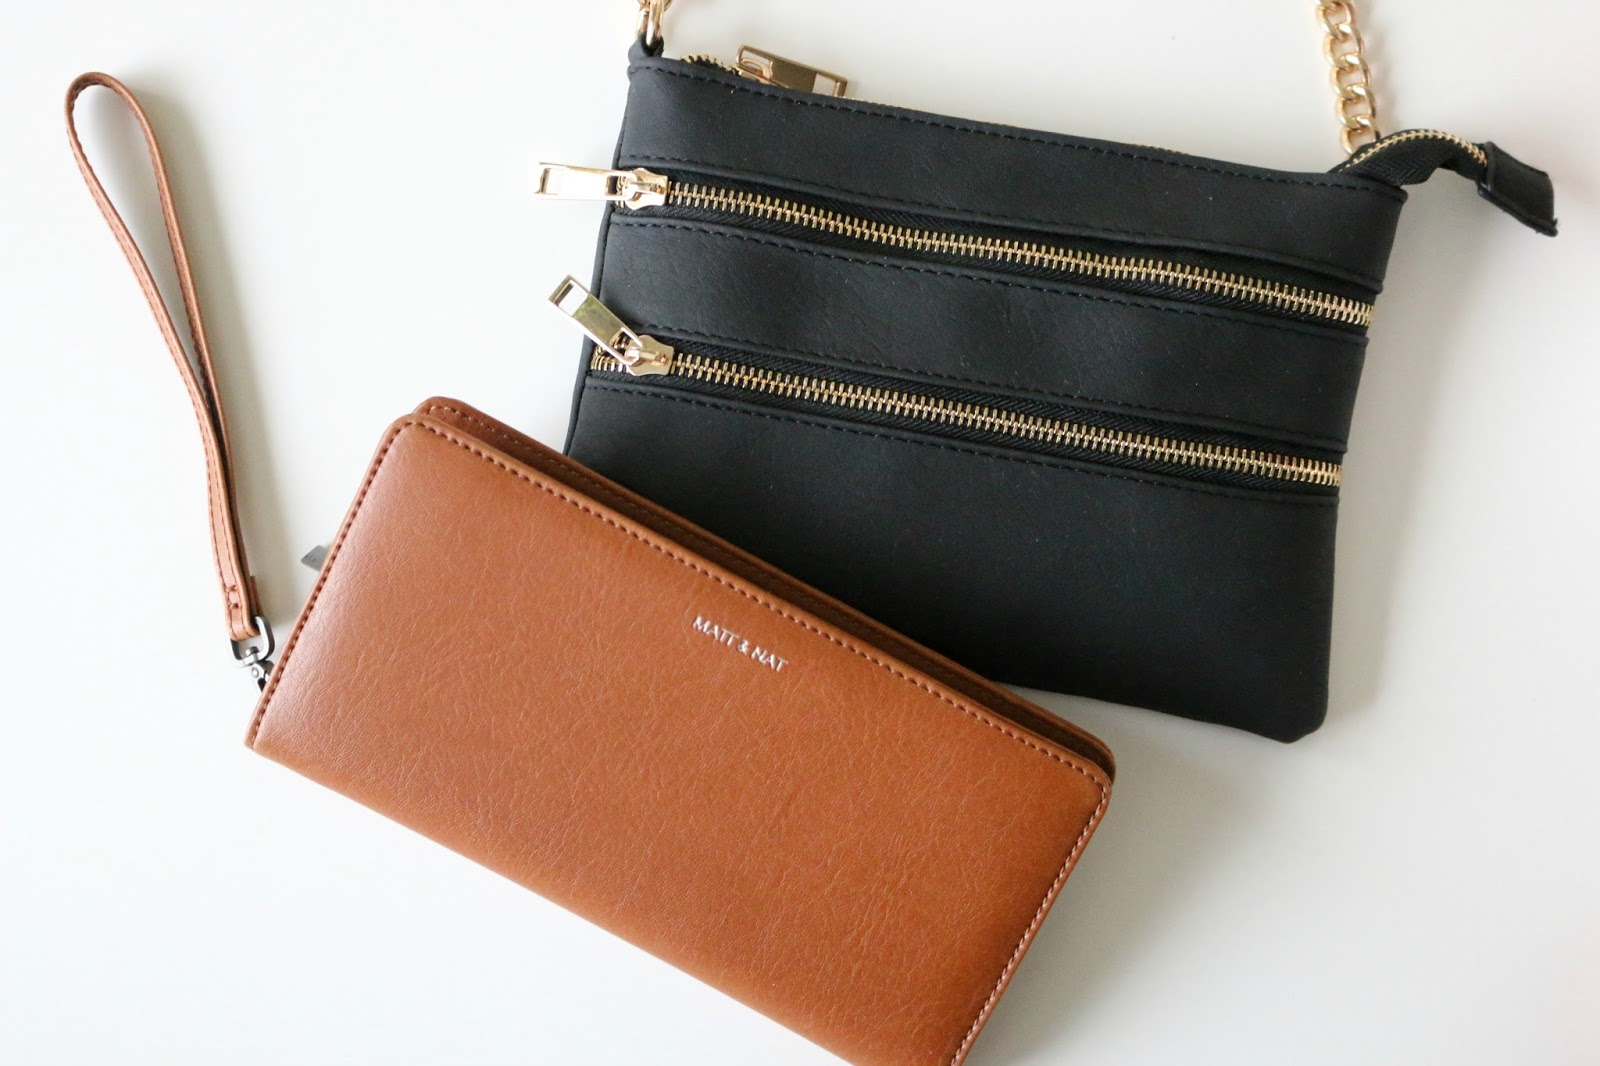 Matt & Nat Duma Chili Wallet Cross-Body Bag